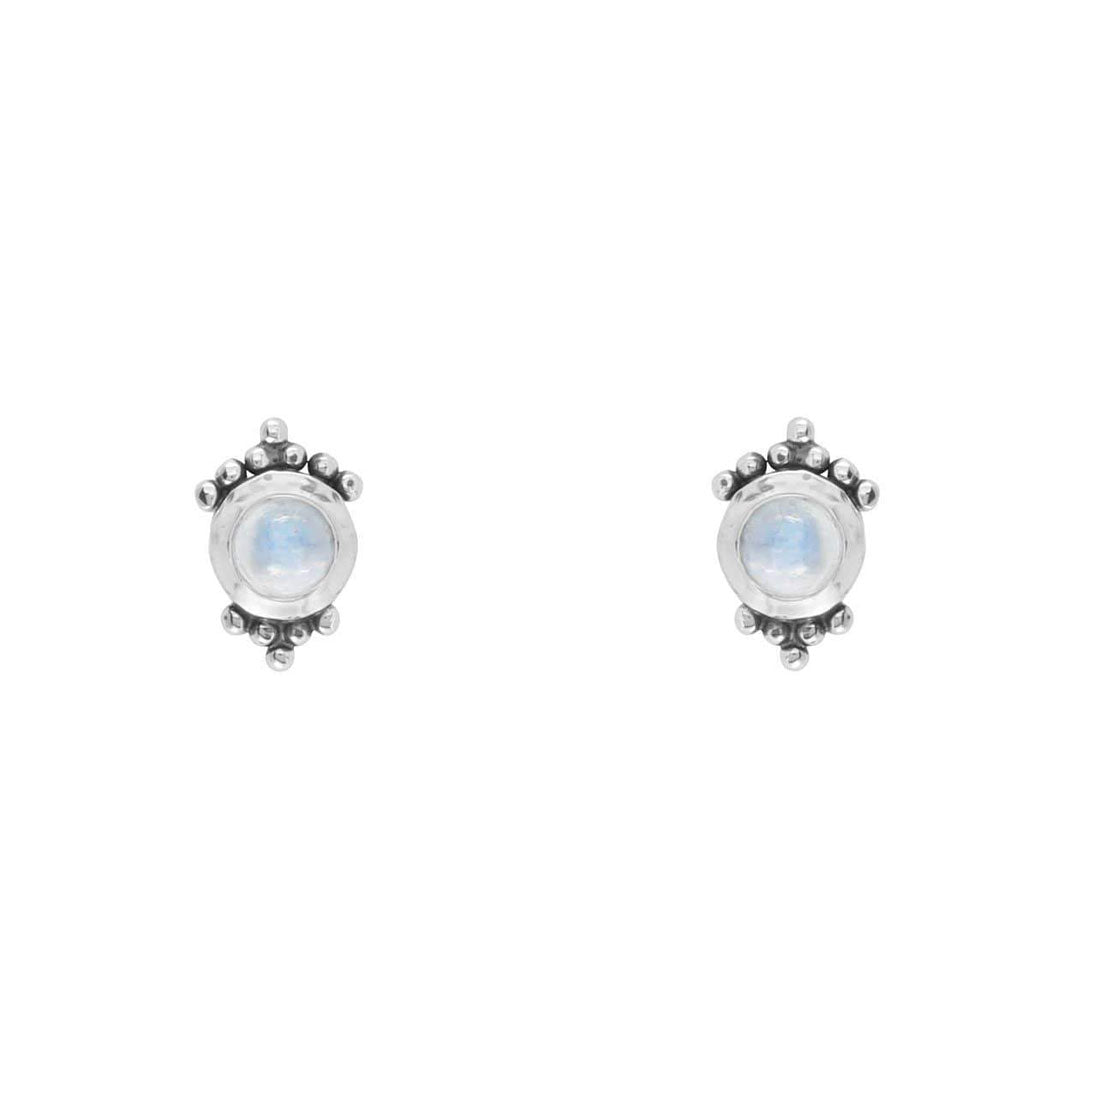 Midsummer Star Earrings Mirage Moonstone Studs